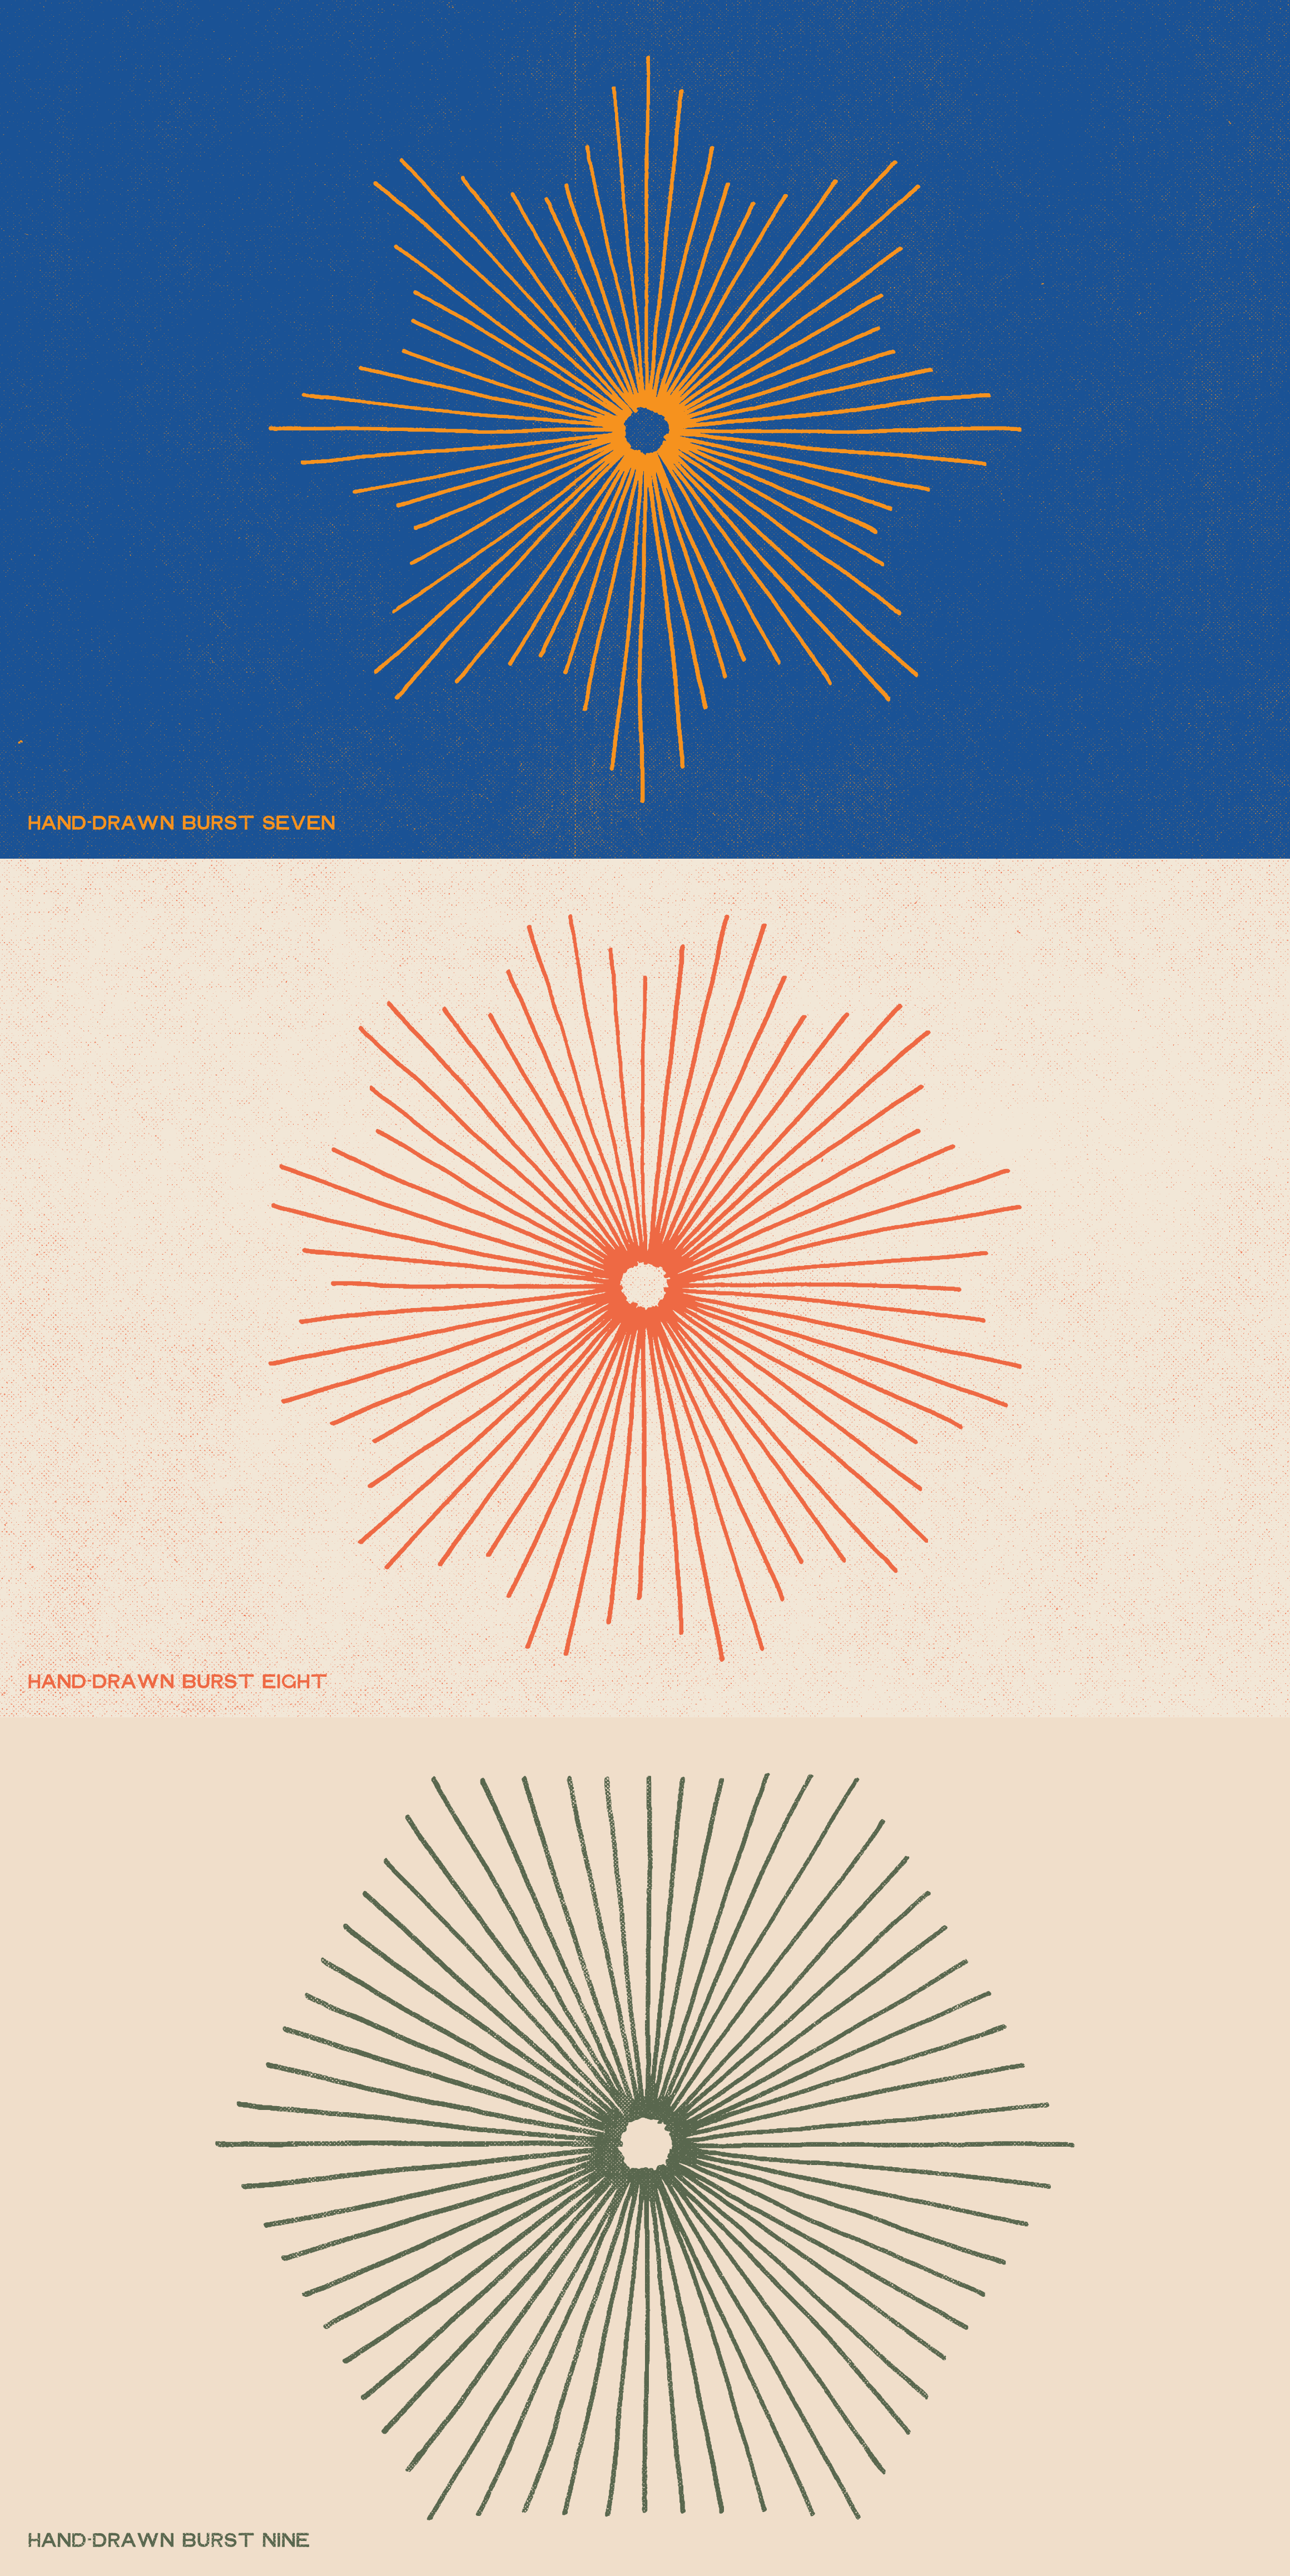 The shop hand drawn burst elements prvs c1r1 dribbble stacked 02